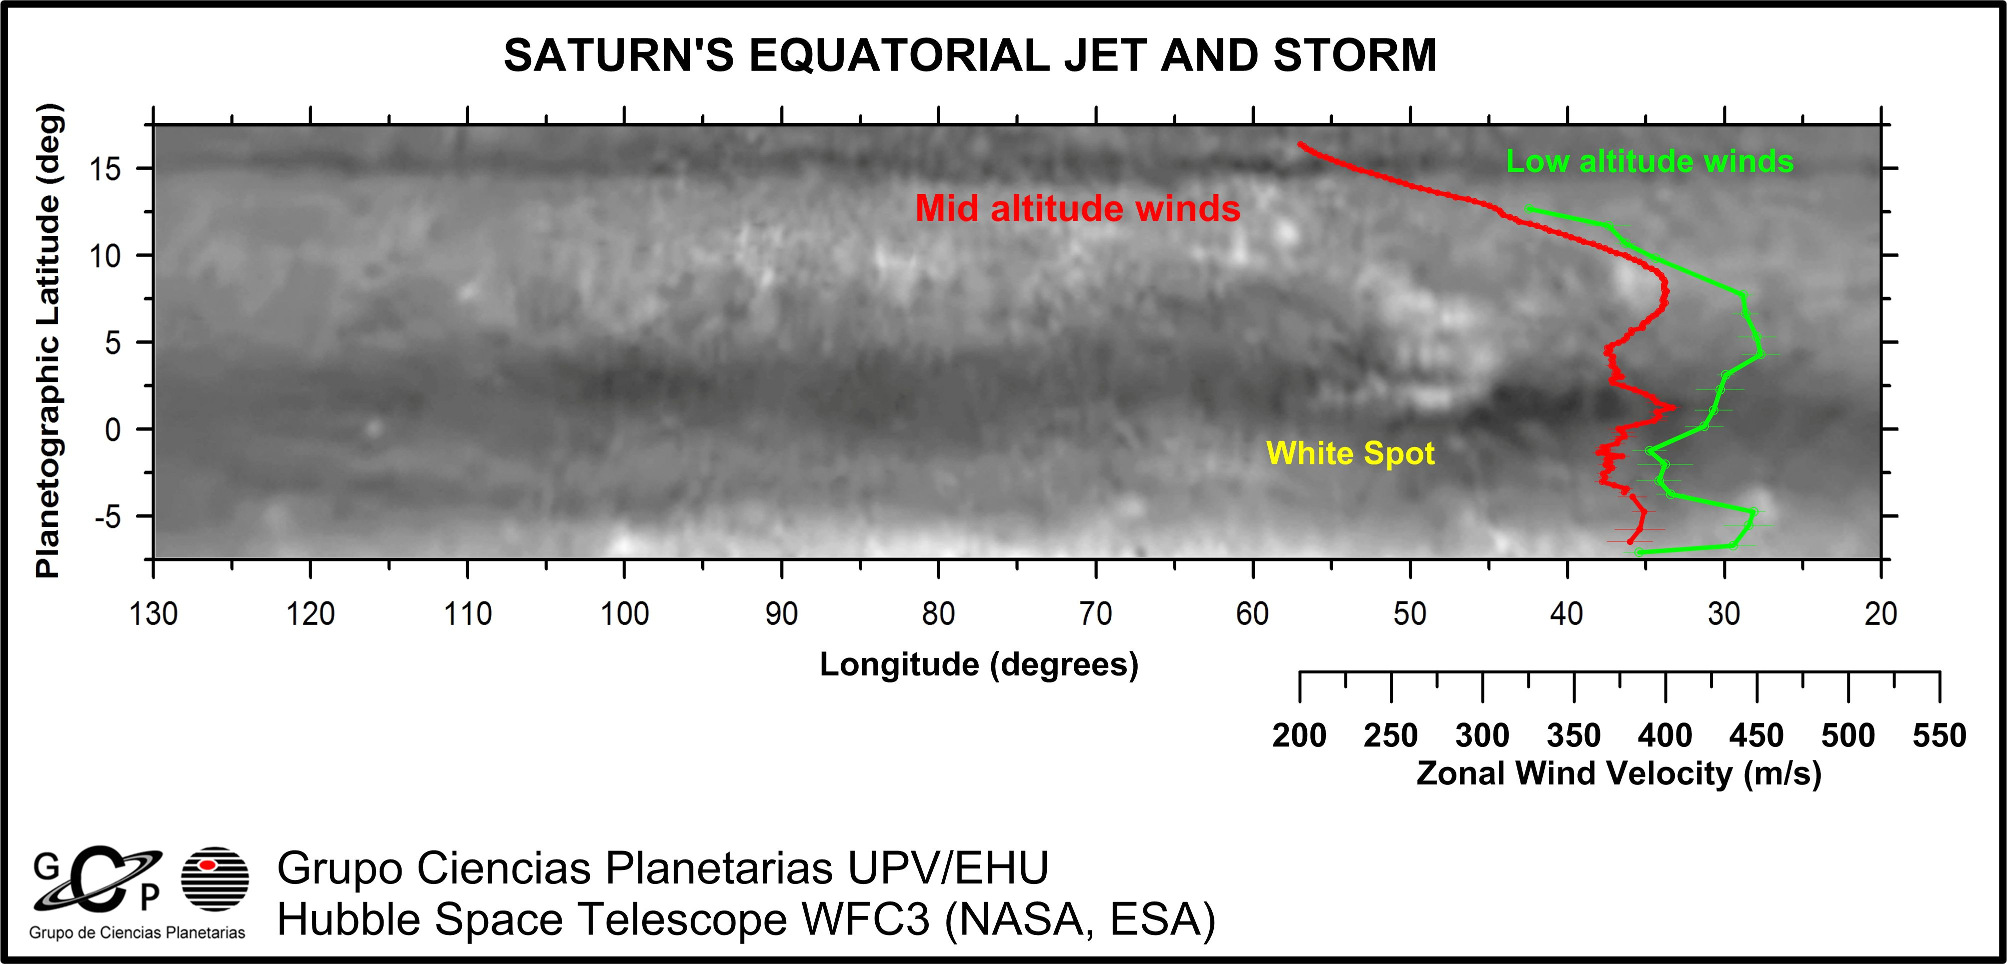 Map of Saturn's equator showing its cloud formations and equatorial storm (White Spot). Superimposed can be seen the profiles of the winds at two altitudes separated by about 50kilometres (30miles), deep ones (green outline) and middle ones (red outline).